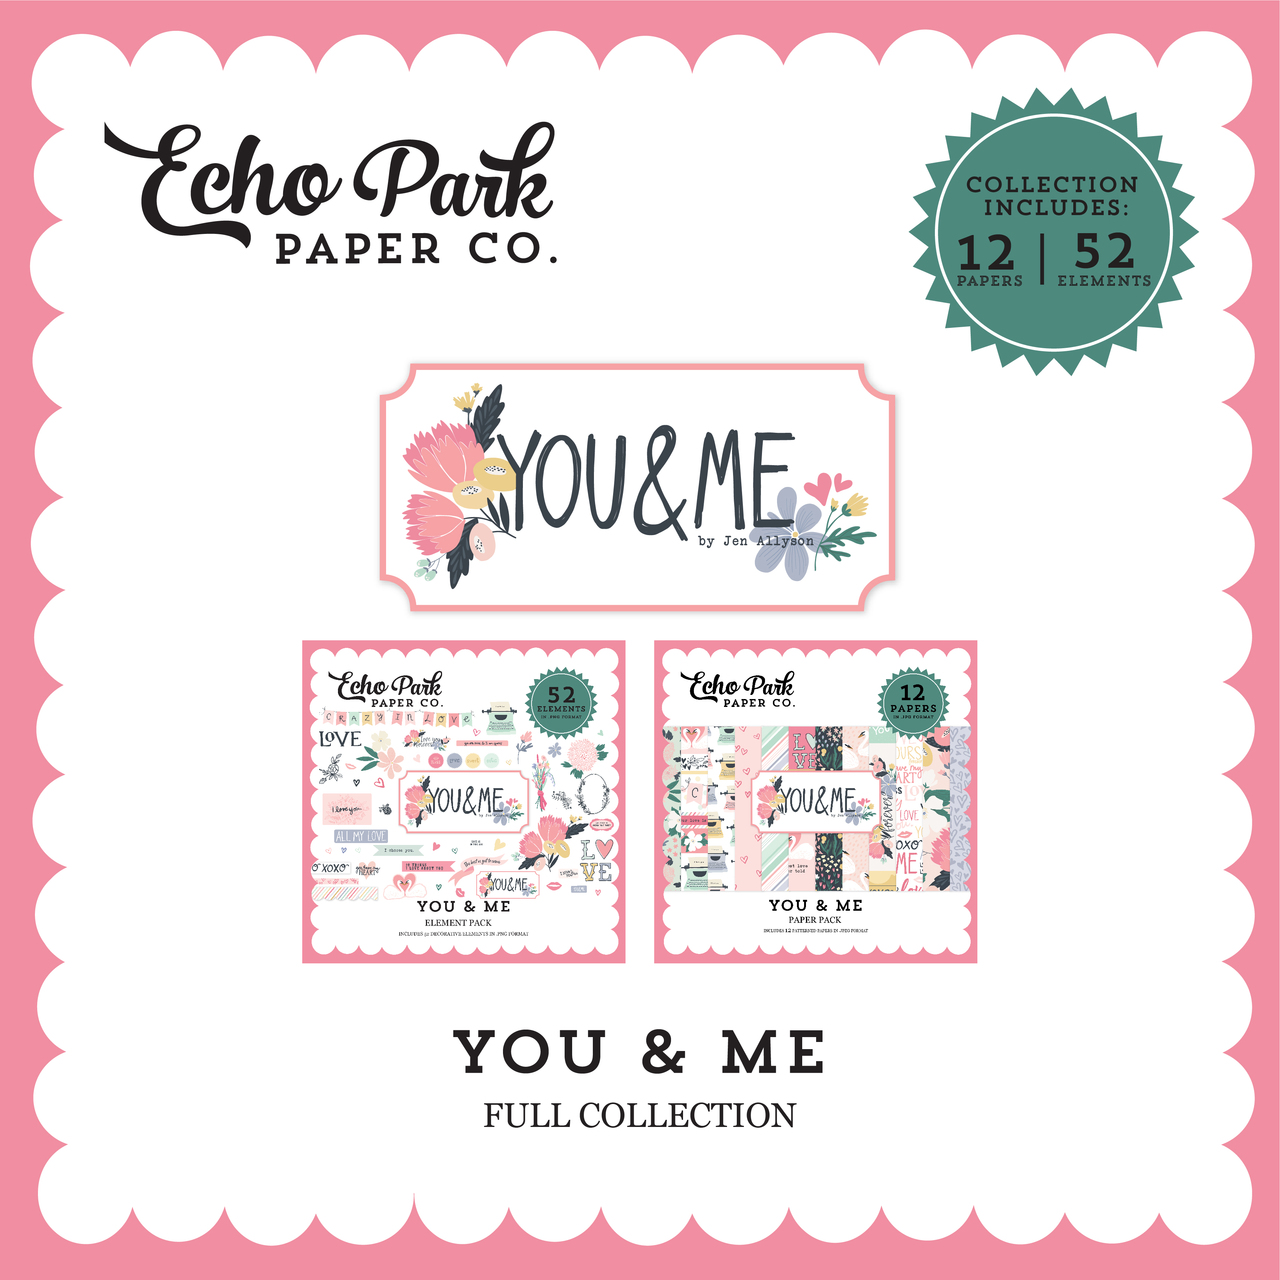 You & Me Full Collection